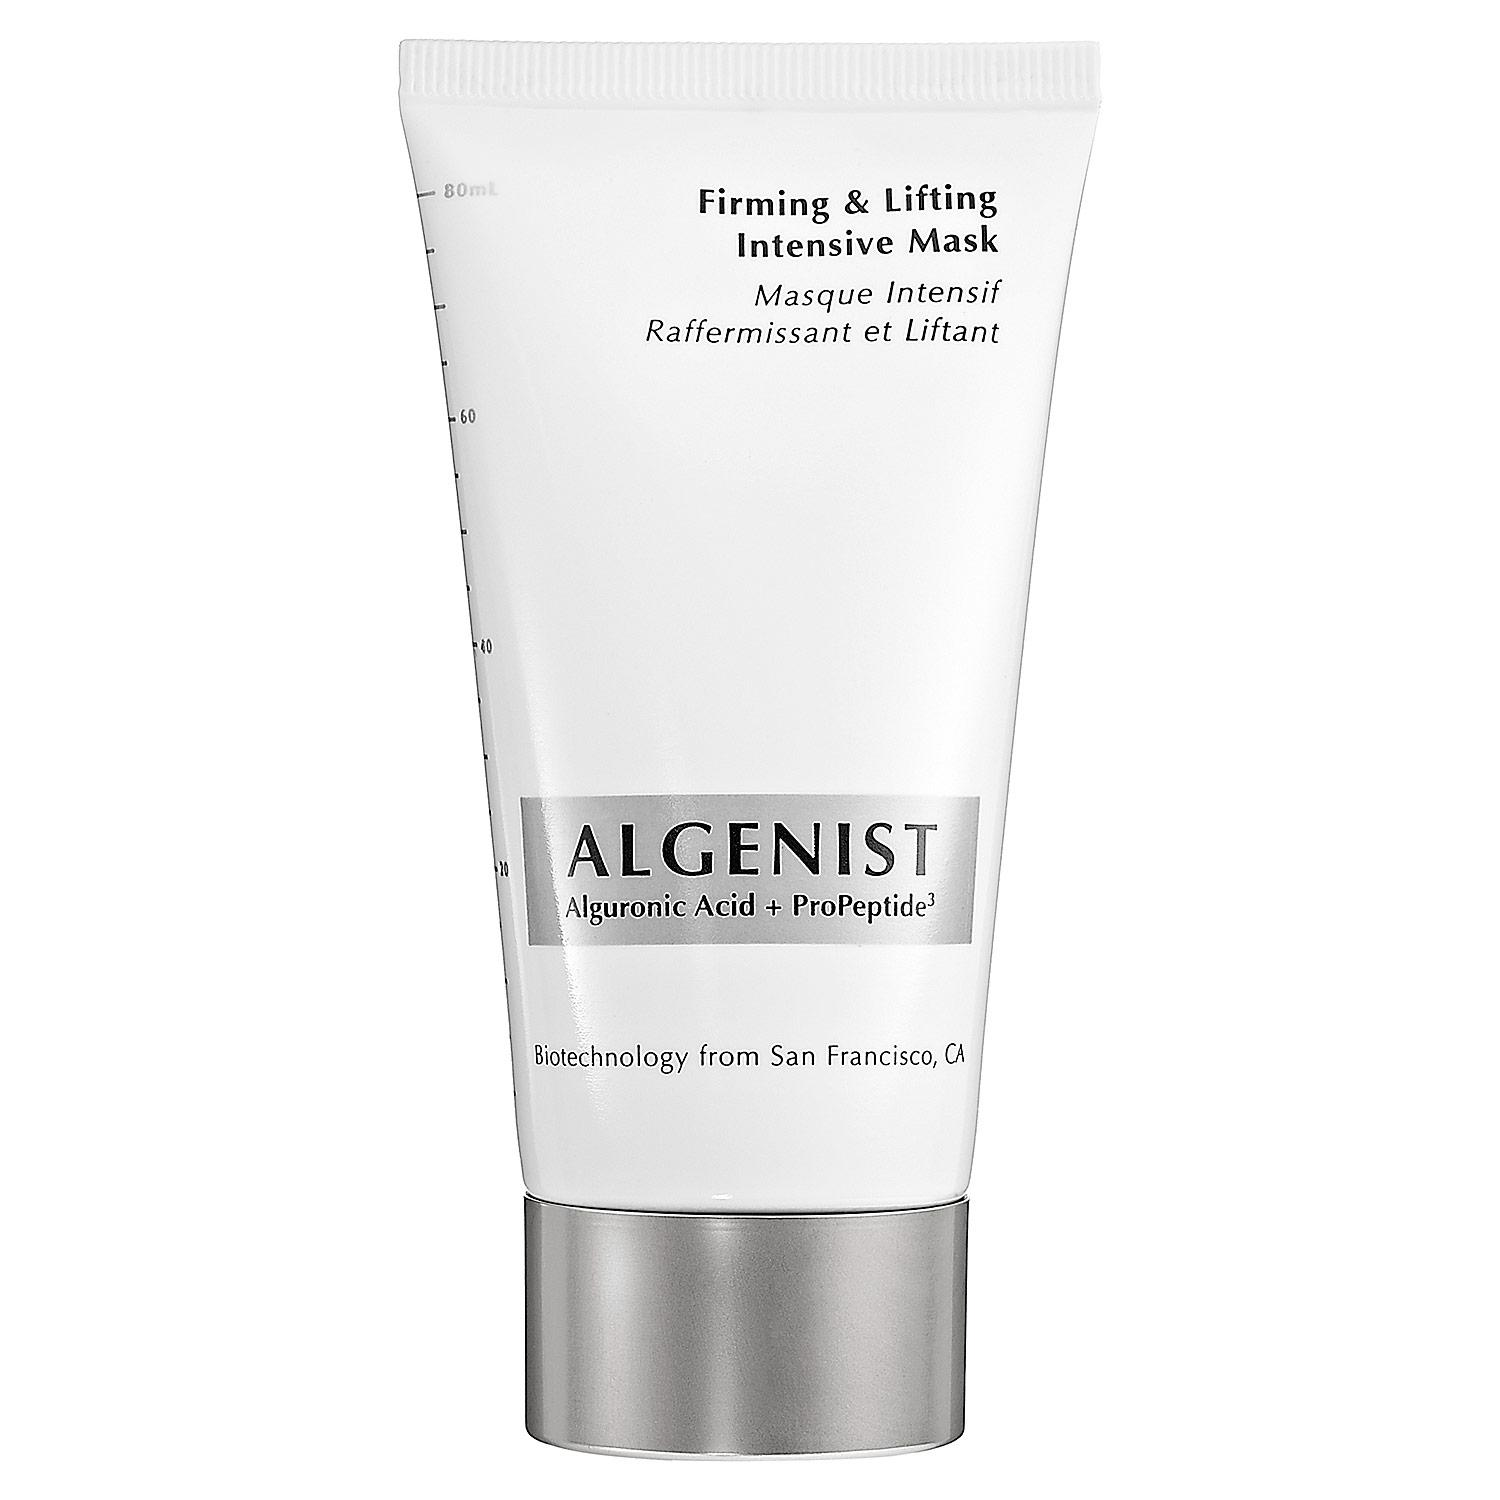 Firming & Lifting Intensive Mask